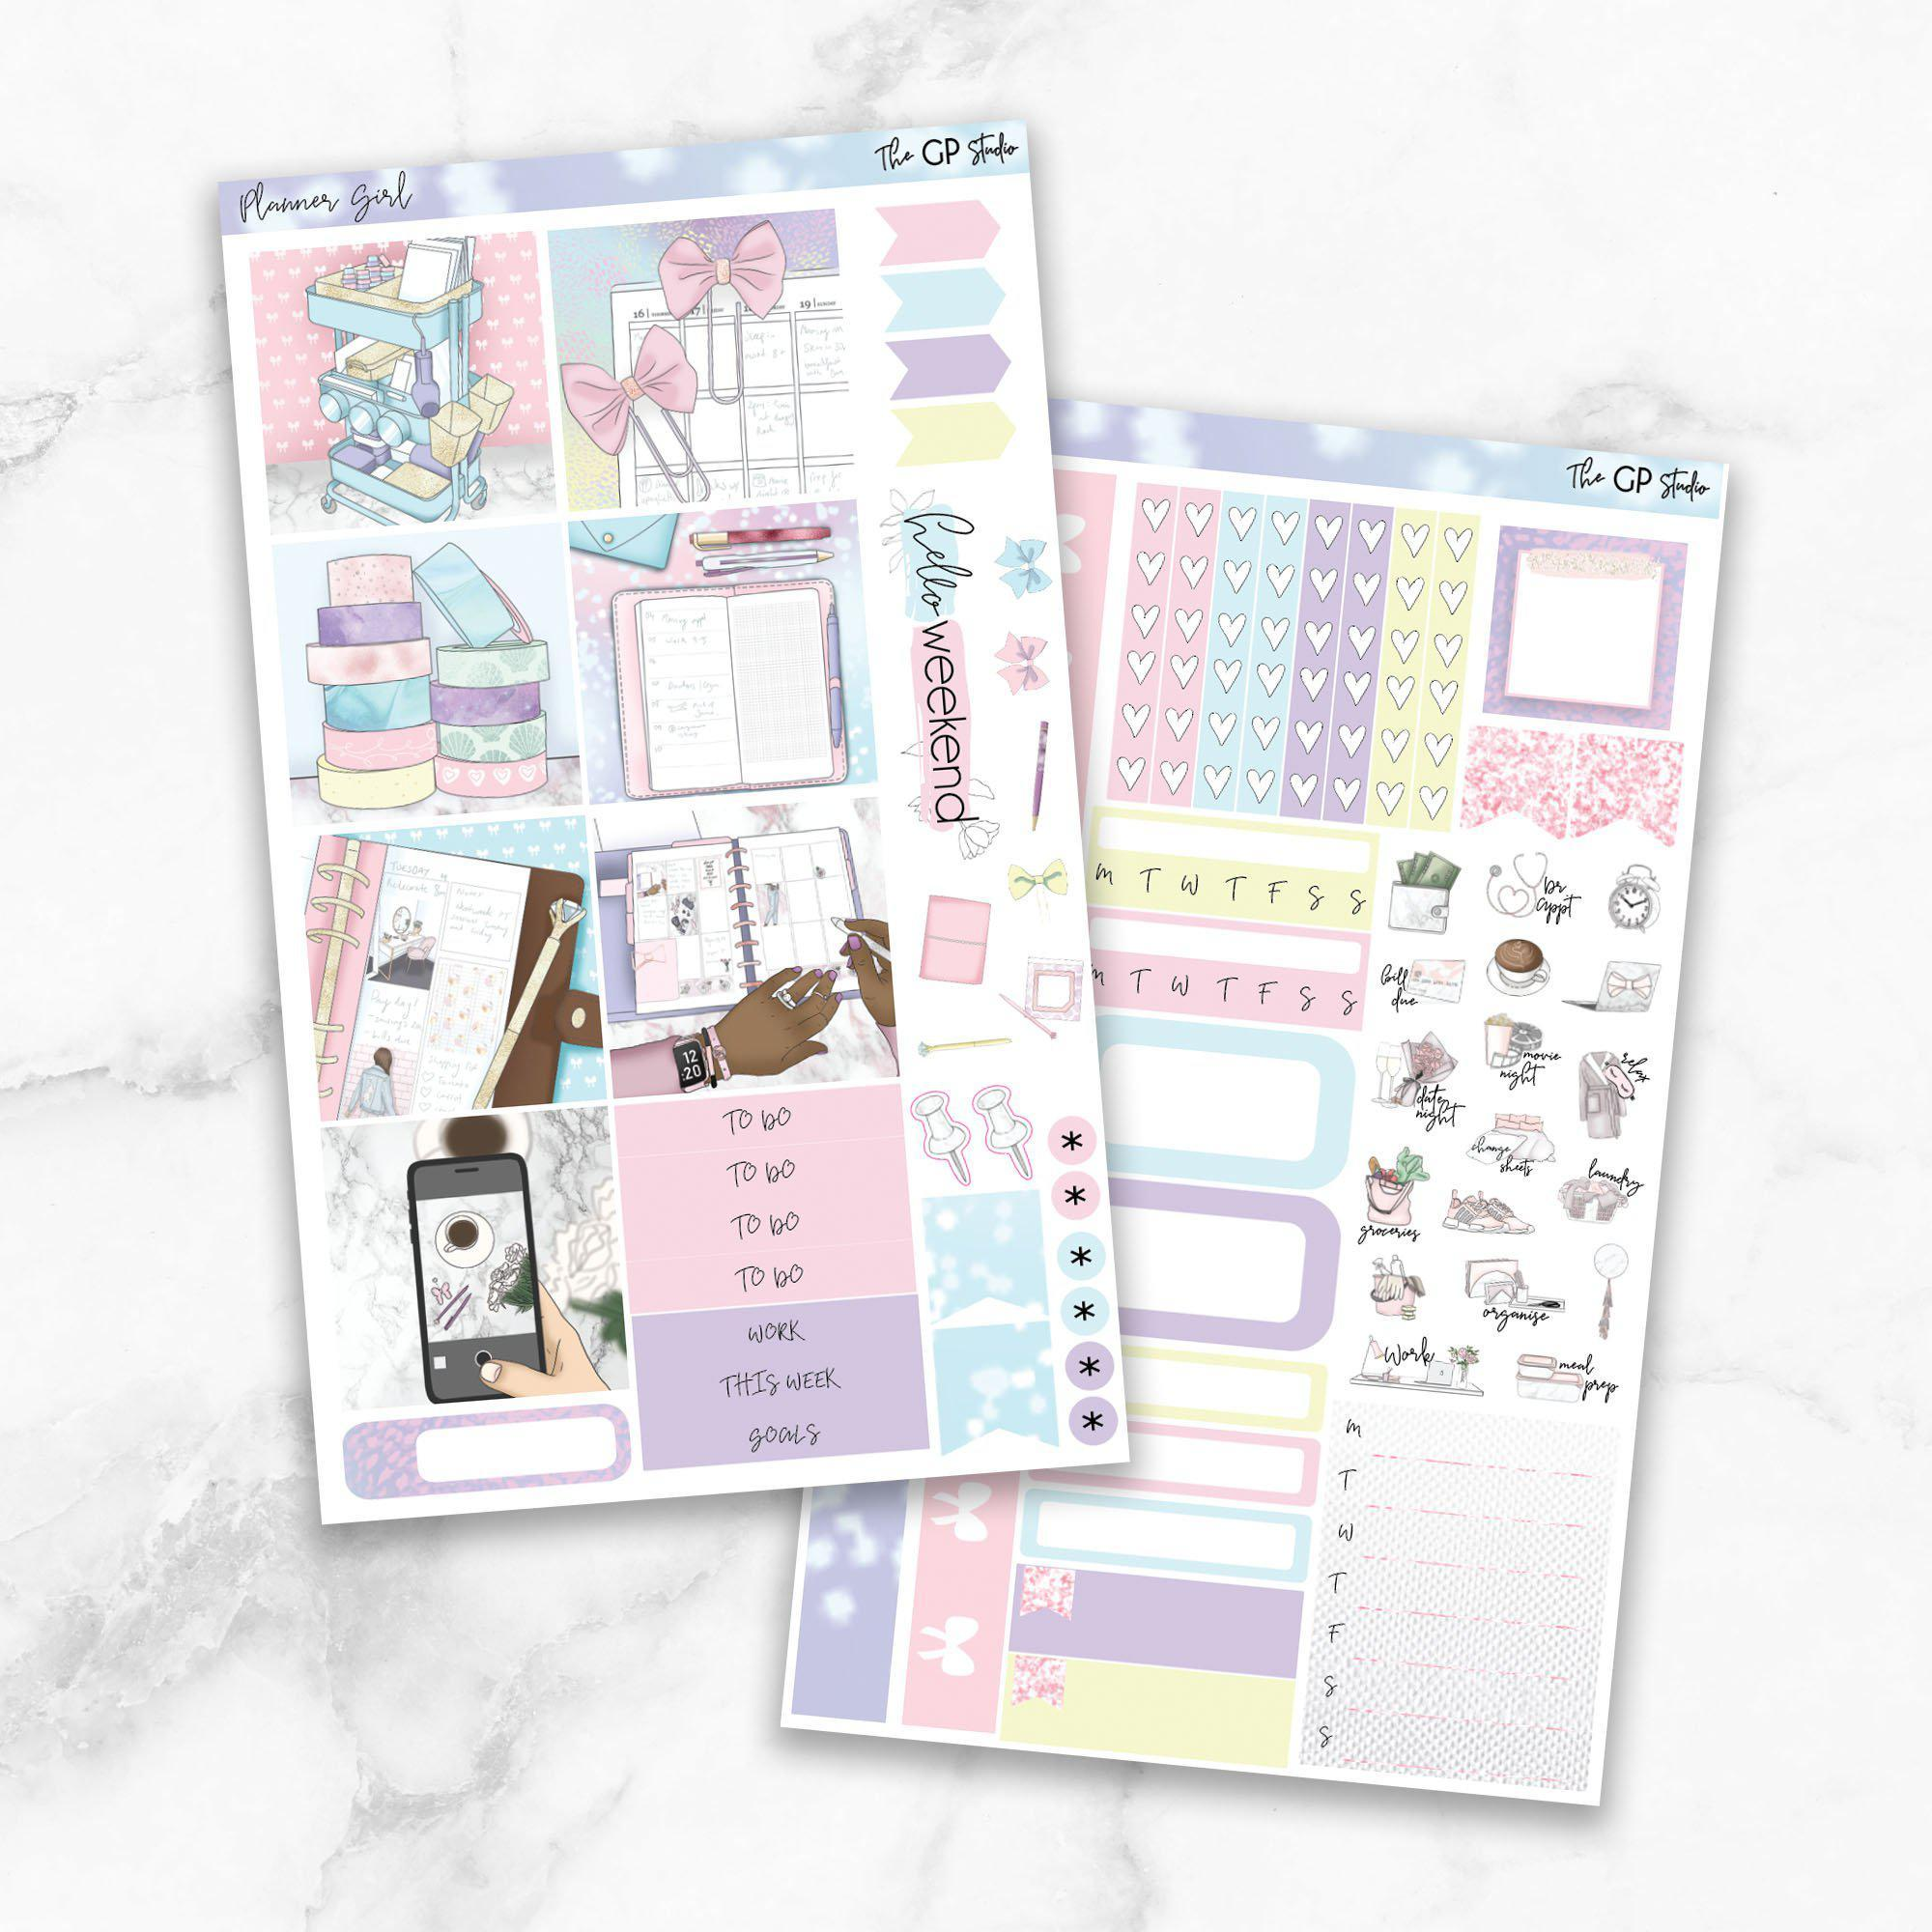 PLANNER GIRL Mini Size Planner Sticker Kit-The GP Studio